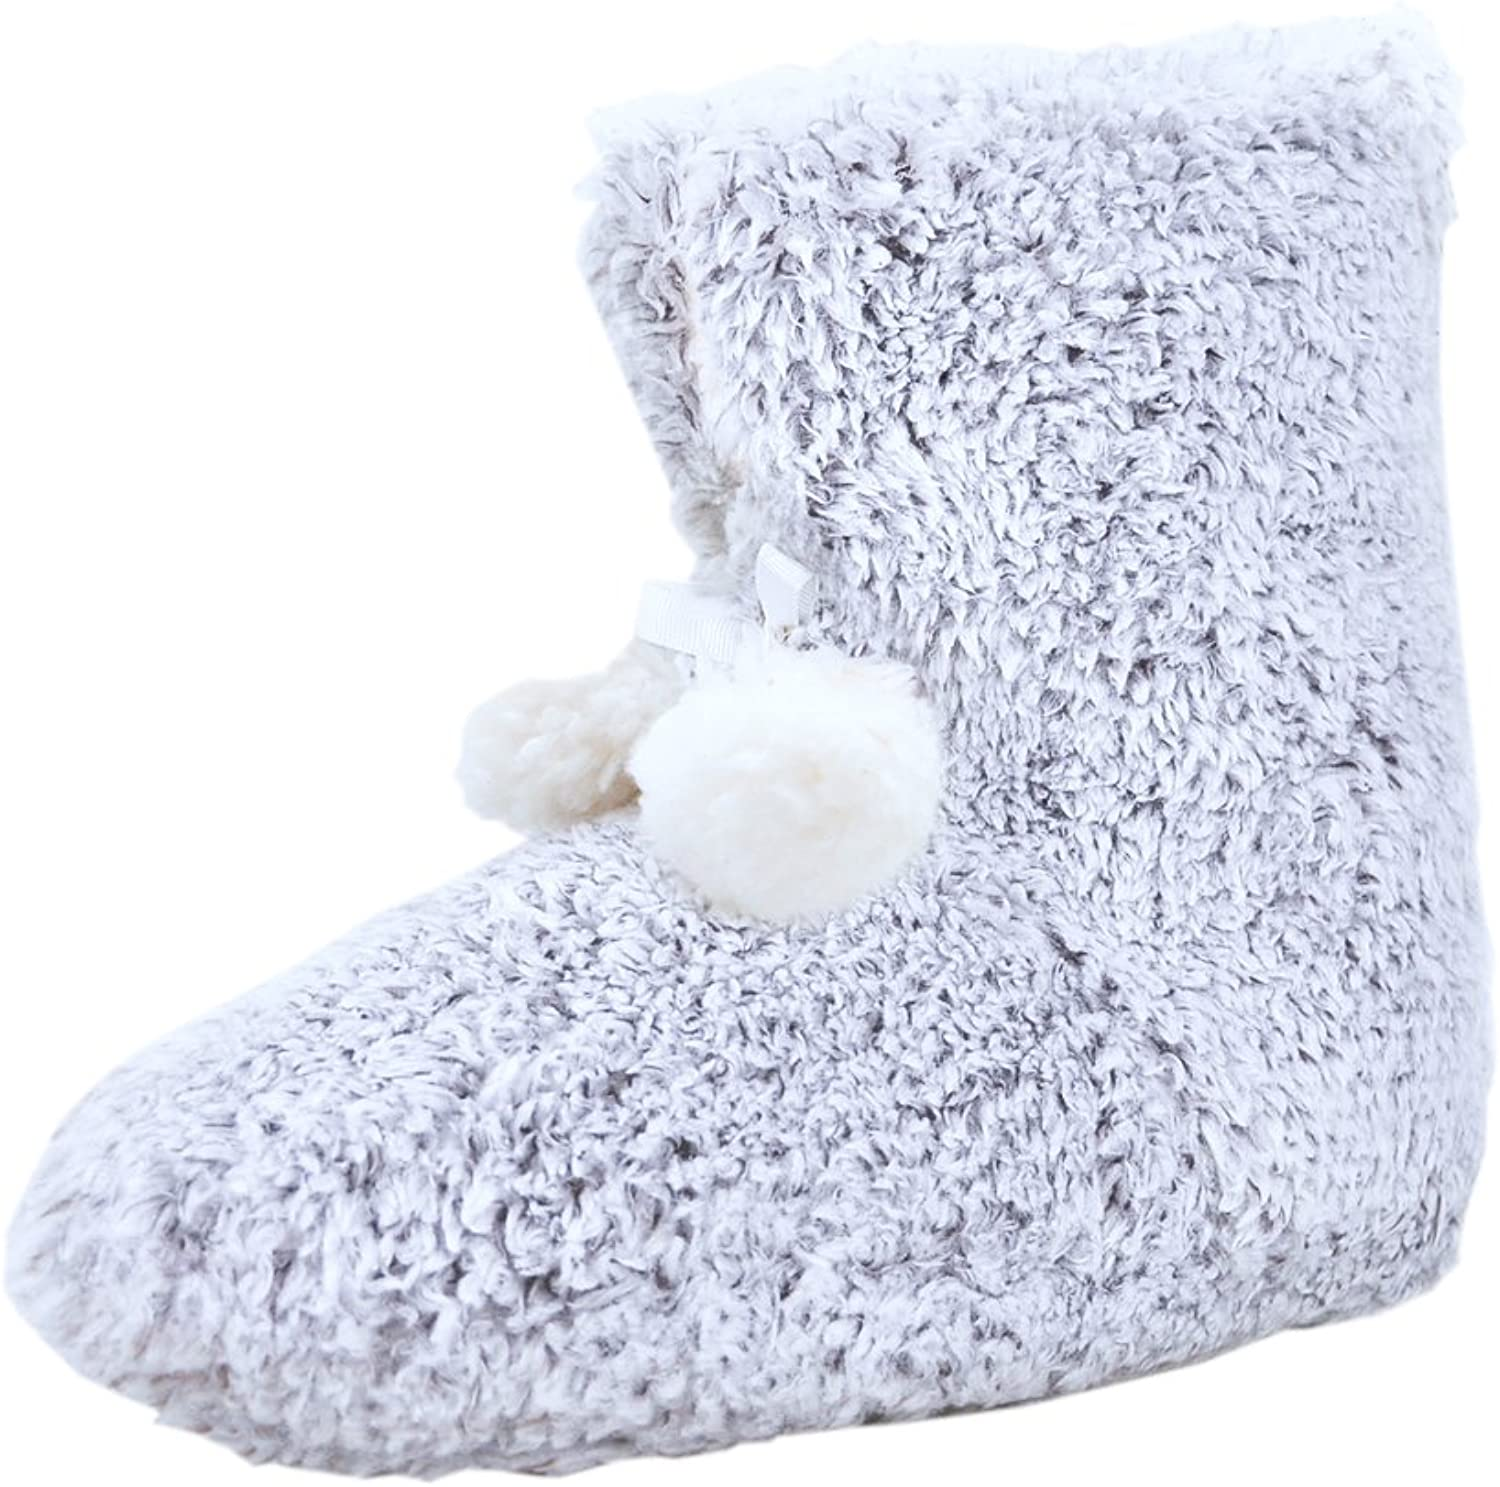 H&A Hans & Alice Indoor Women's Memory Foam Sweater Knit Pom Fuzzy Bootie Slippers. Comfy and Plush